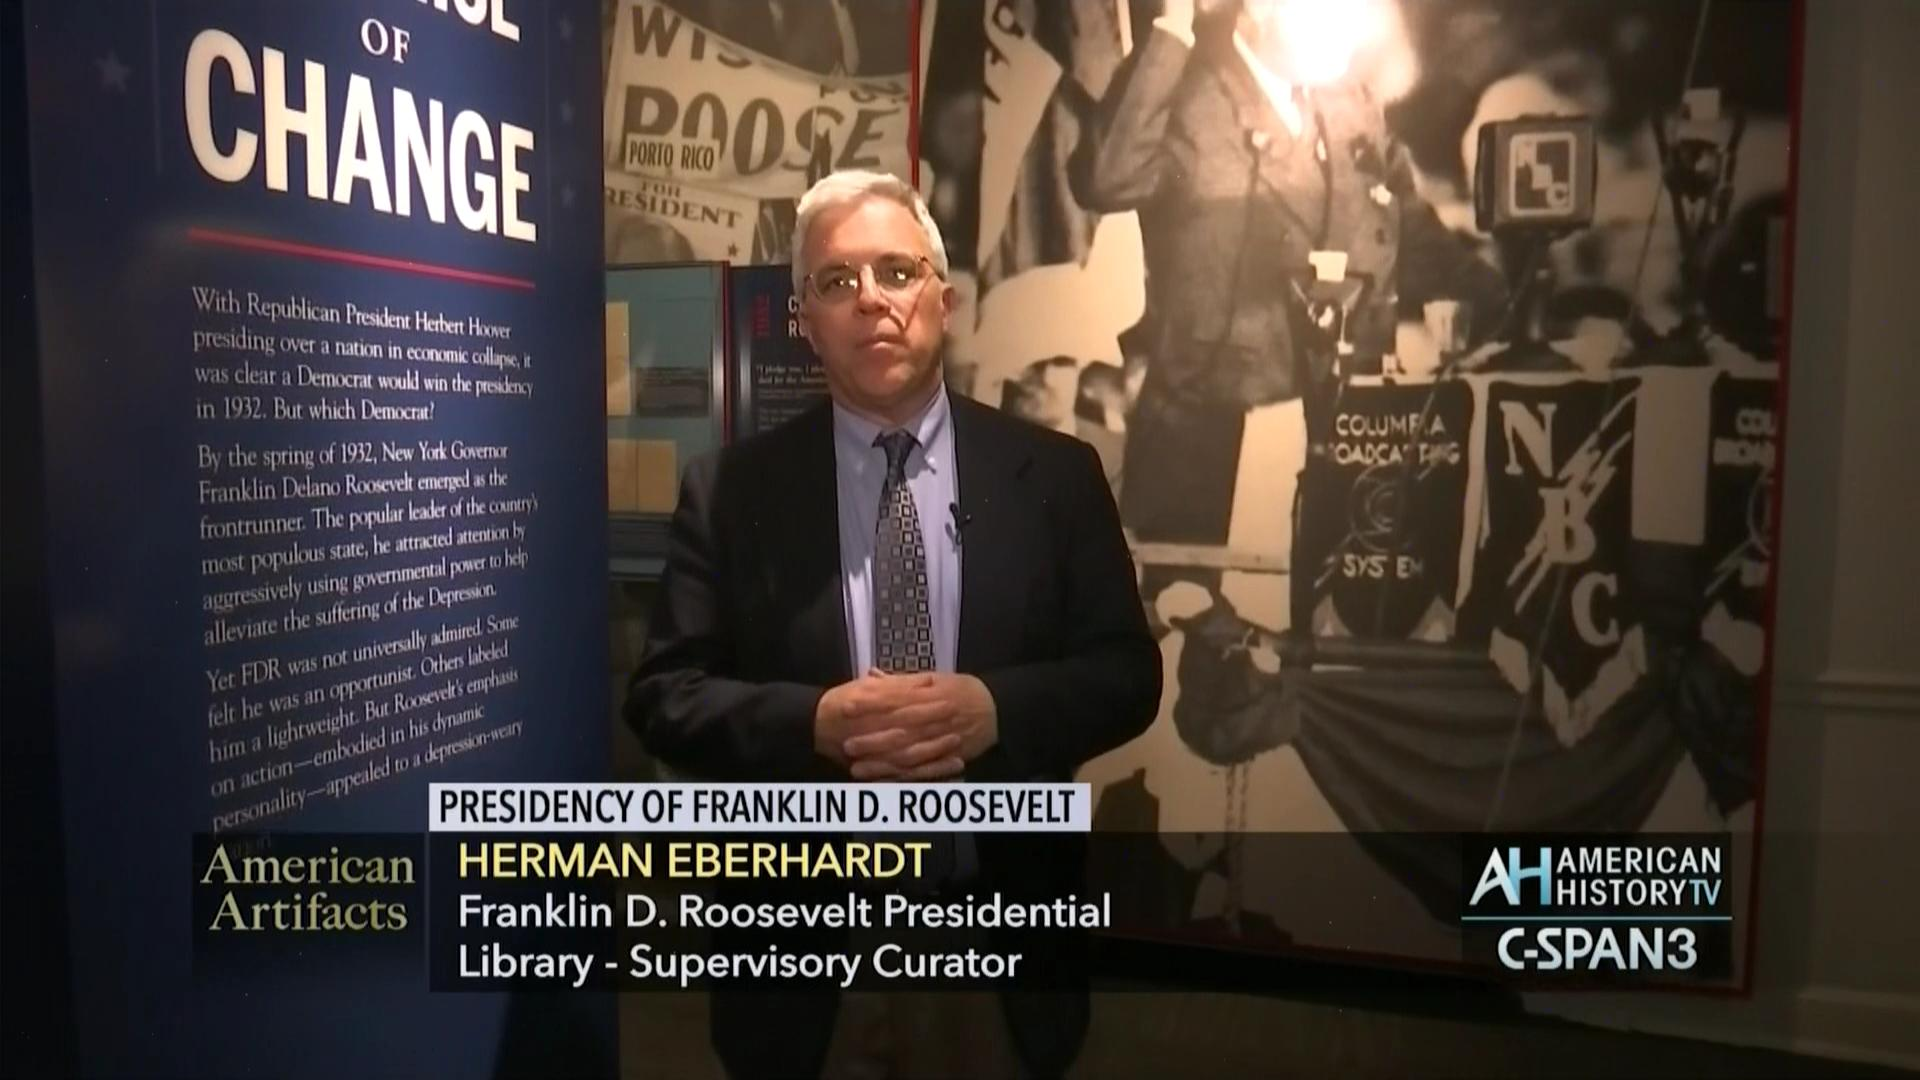 Franklin D Roosevelt Presidential Library Museum, May 22 2017 | C-SPAN.org